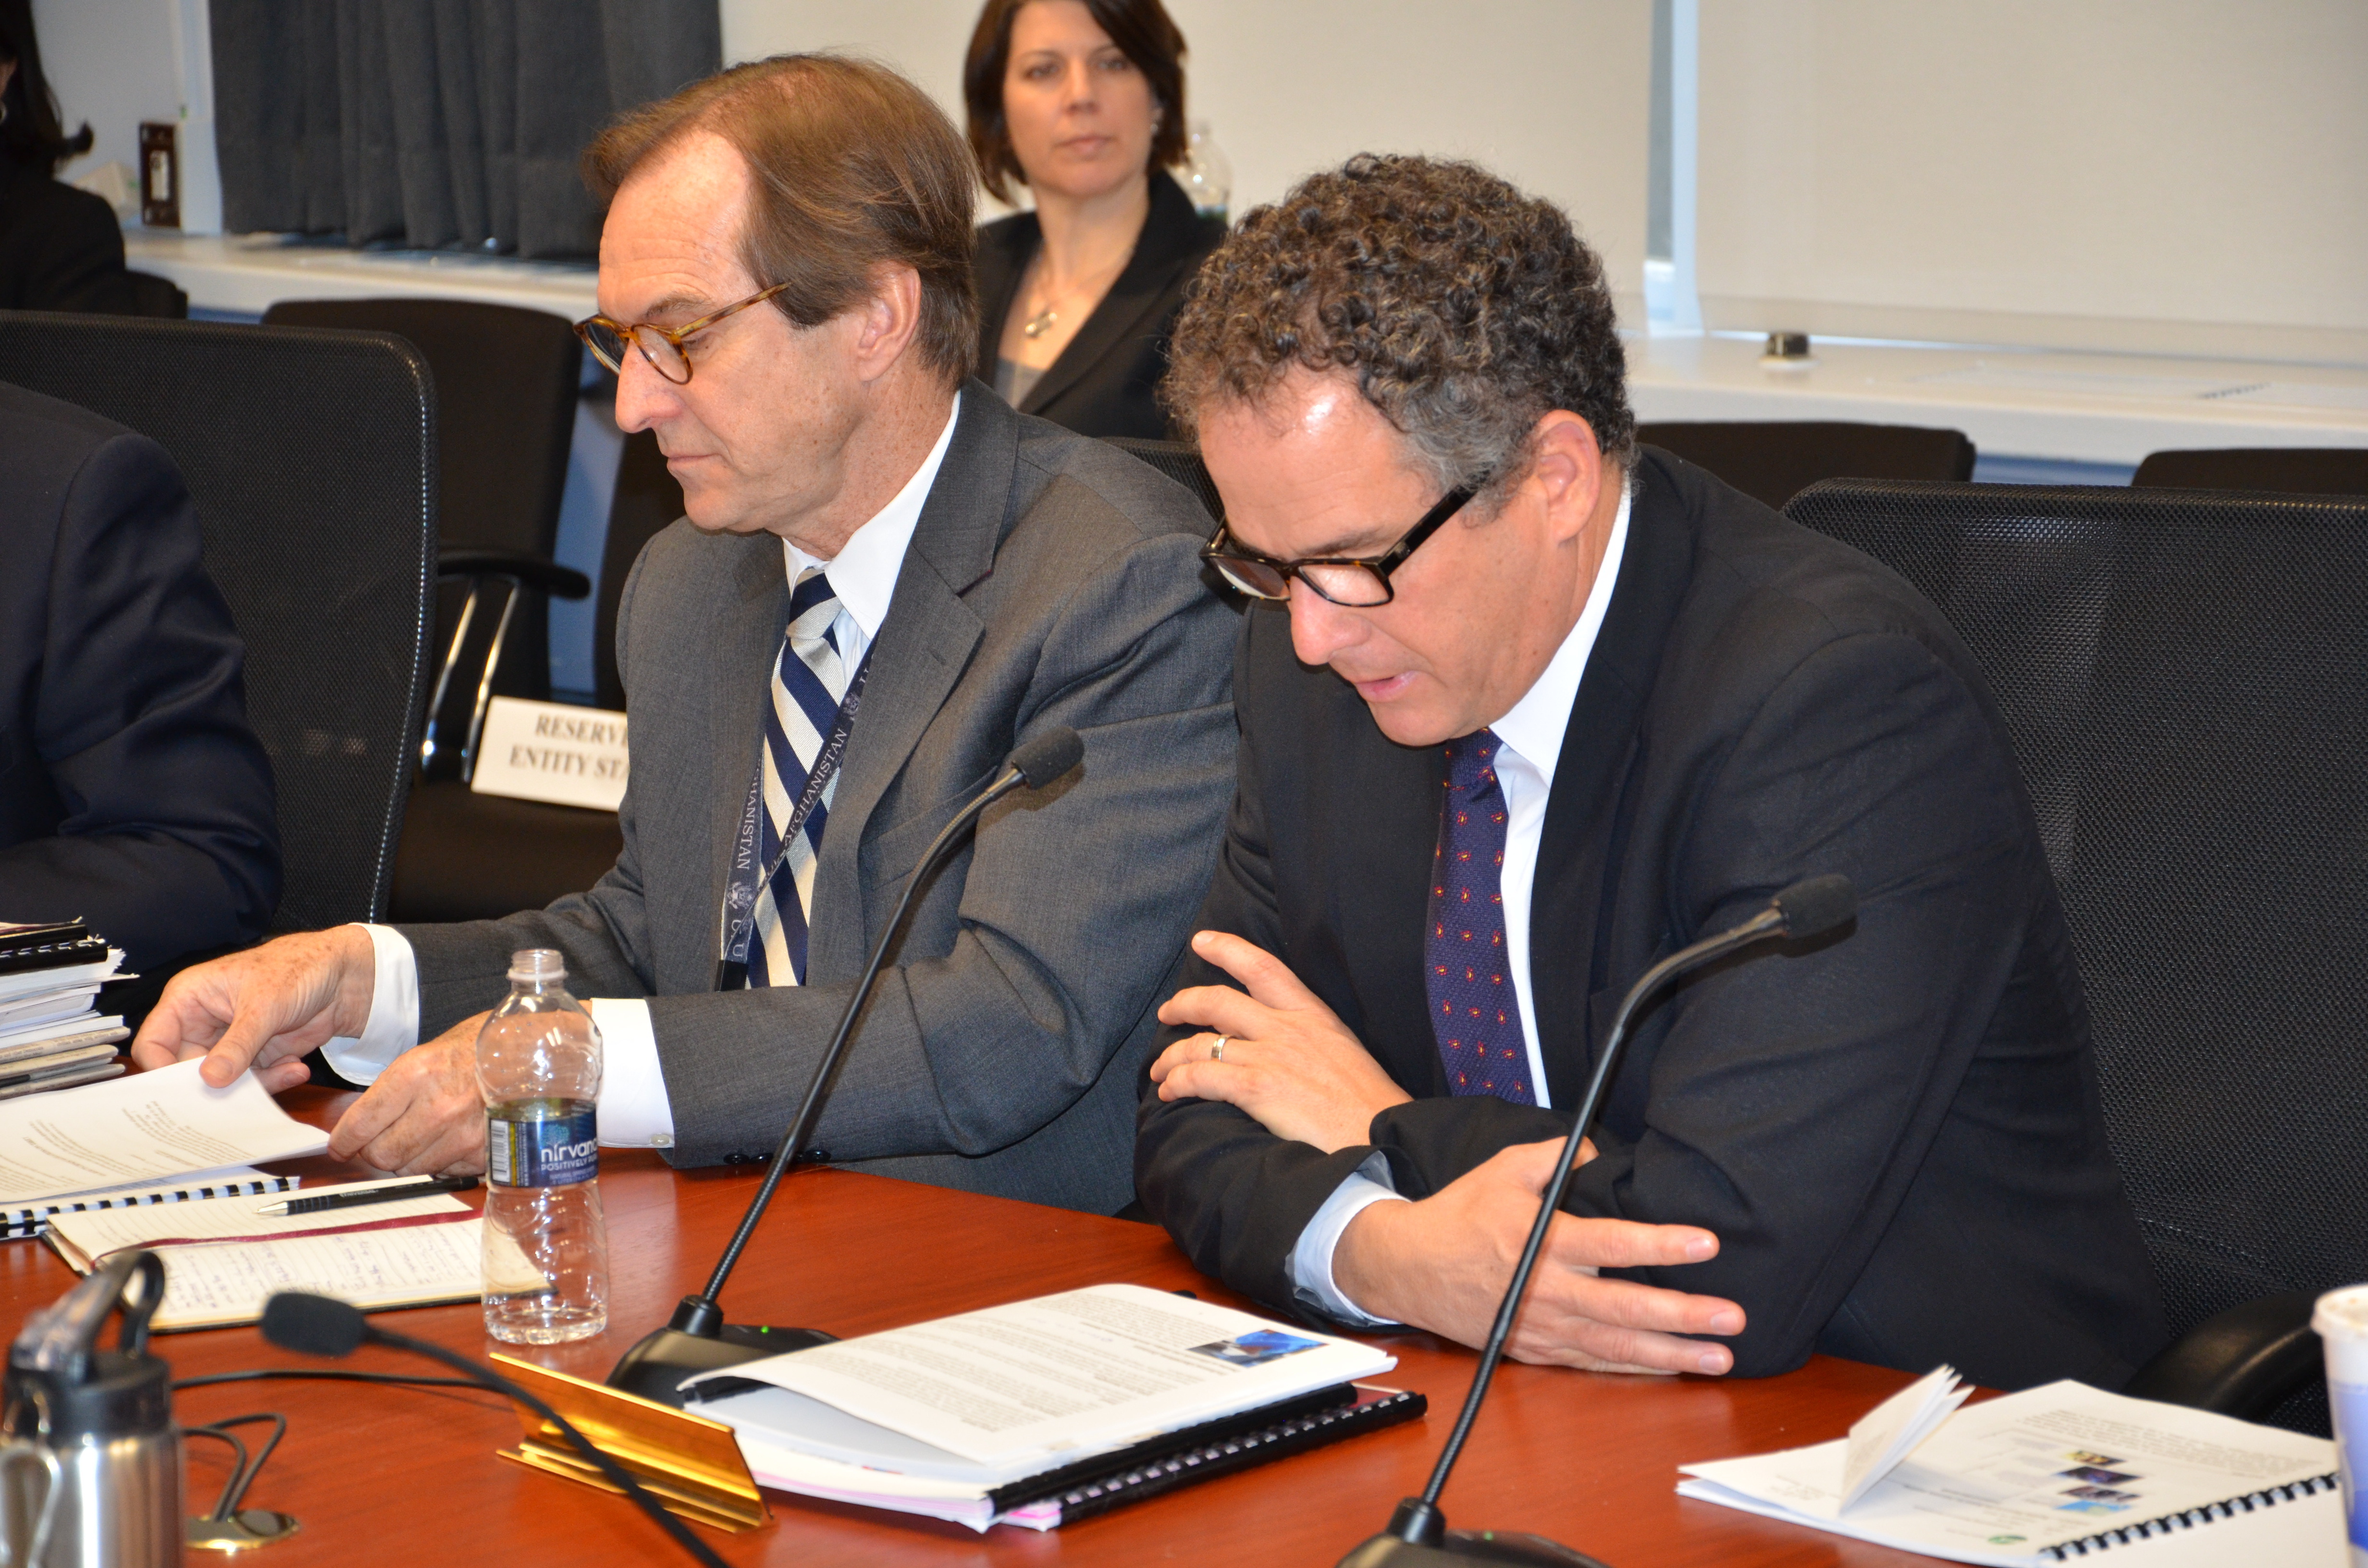 Broadcasting Executives David Ensor and Carlos Garcia-Perez present to the board on Feb 22, 2013